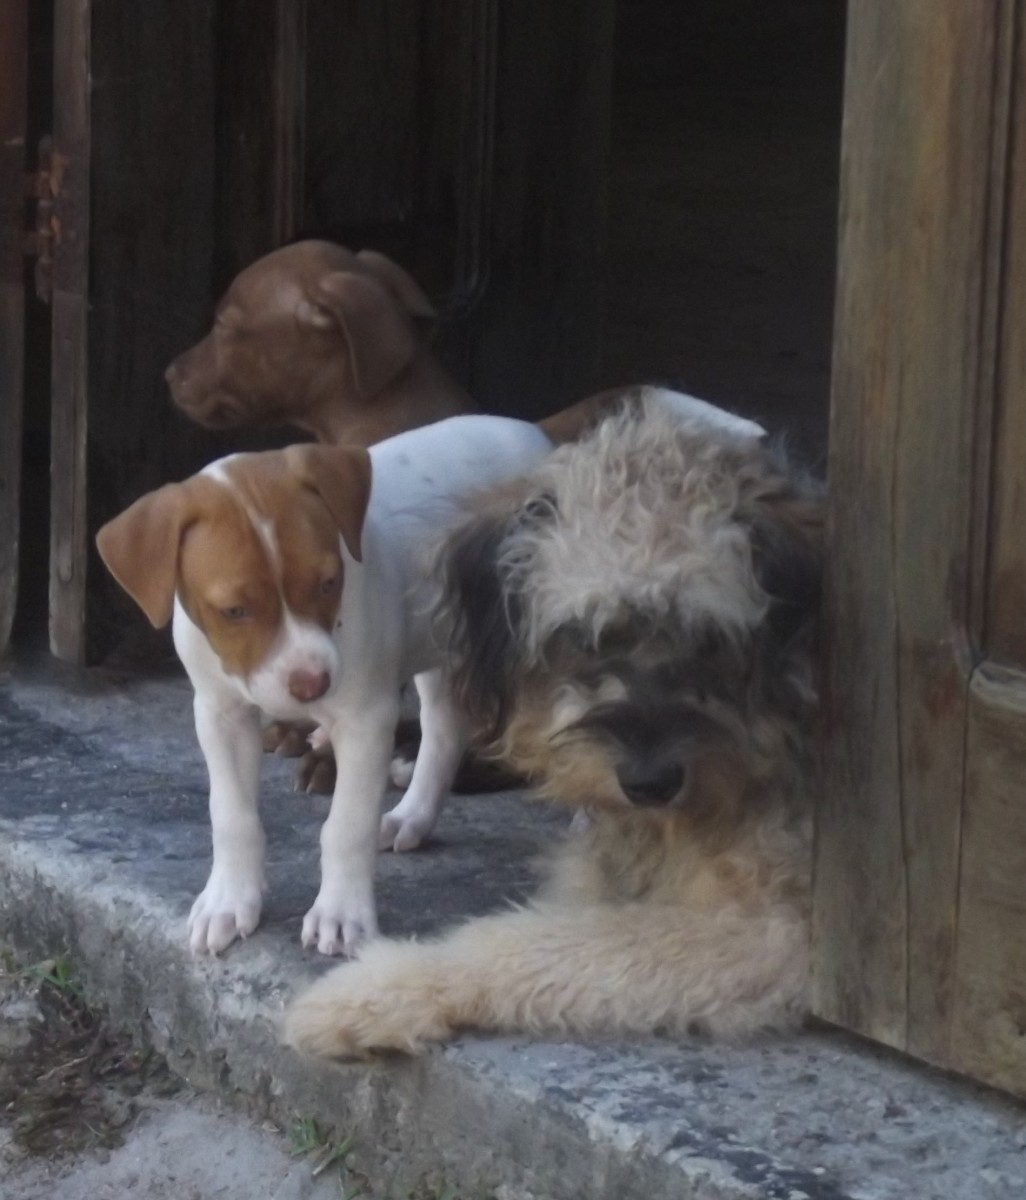 Having an open door makes housetraining go easier; having an older dog to teach right from wrong makes things that much smoother.